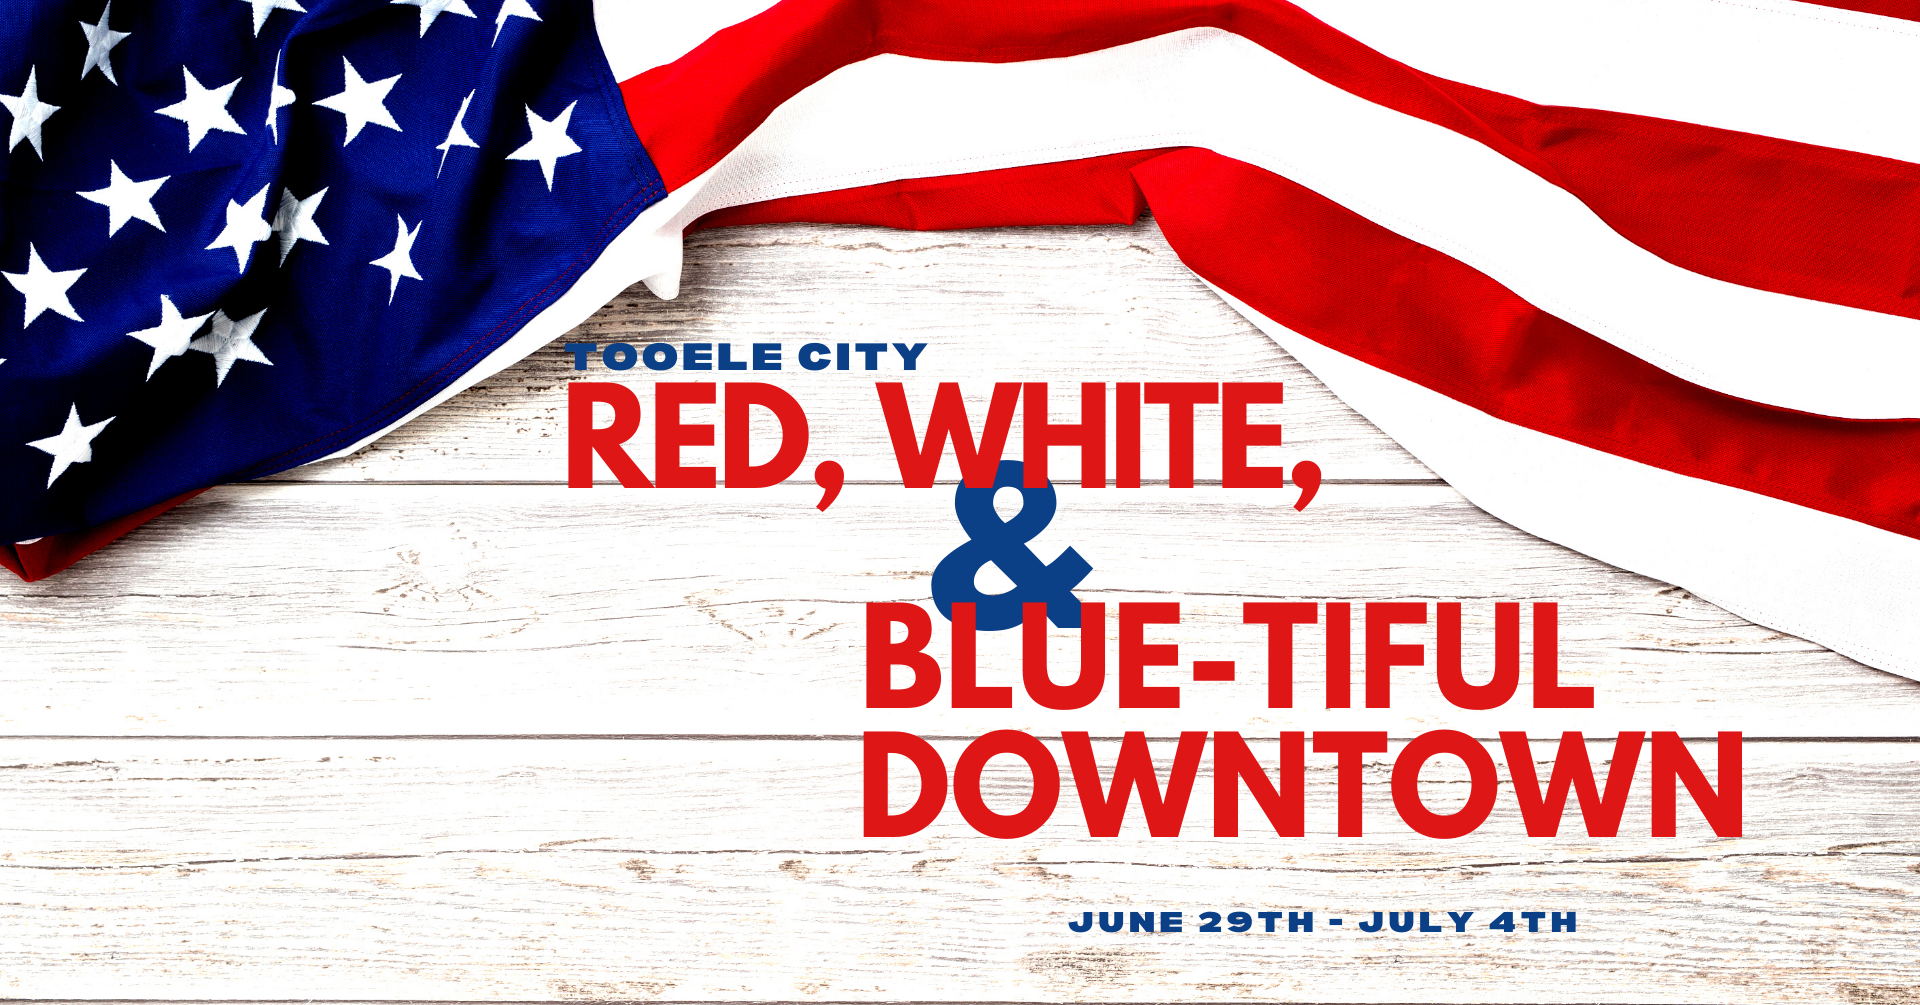 Red, White, and Blue-tiful Downtown Tooele City